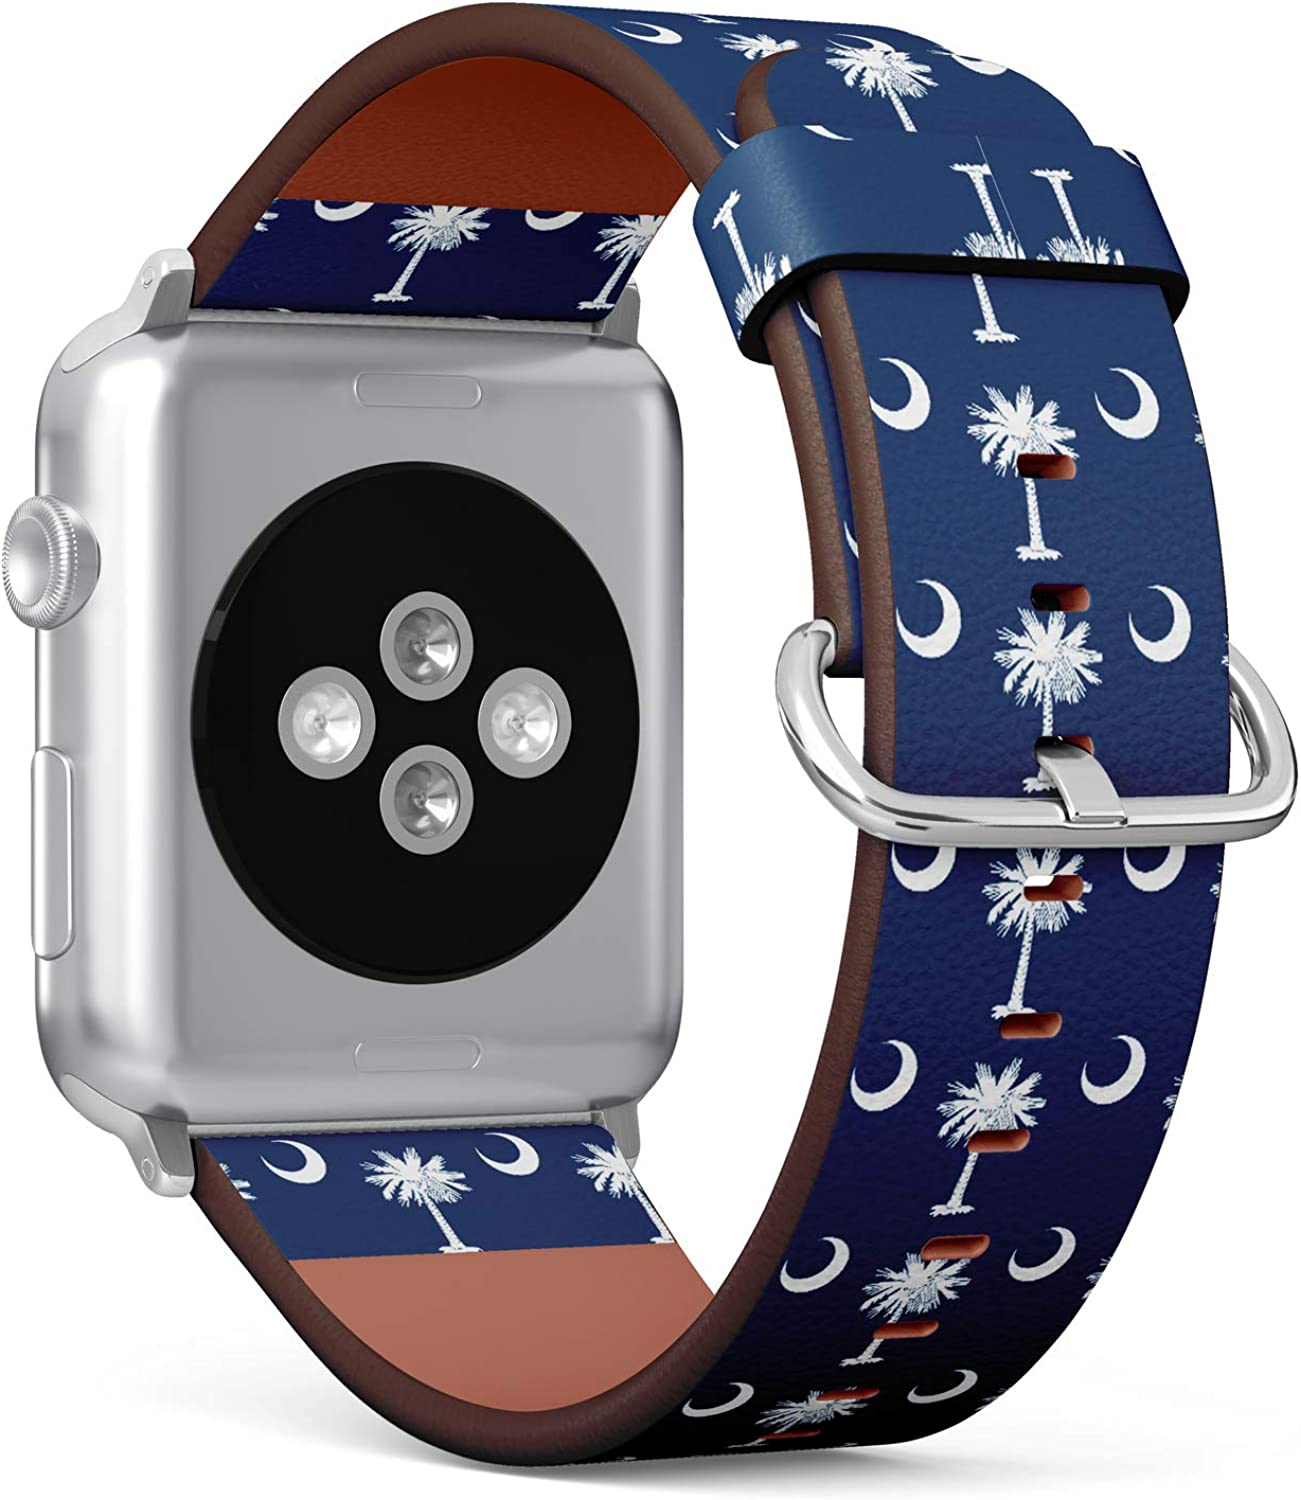 (State Flag of South Carolina) Patterned Leather Wristband Strap for Apple Watch Series 4/3/2/1 gen,Replacement for iWatch 42mm / 44mm Bands